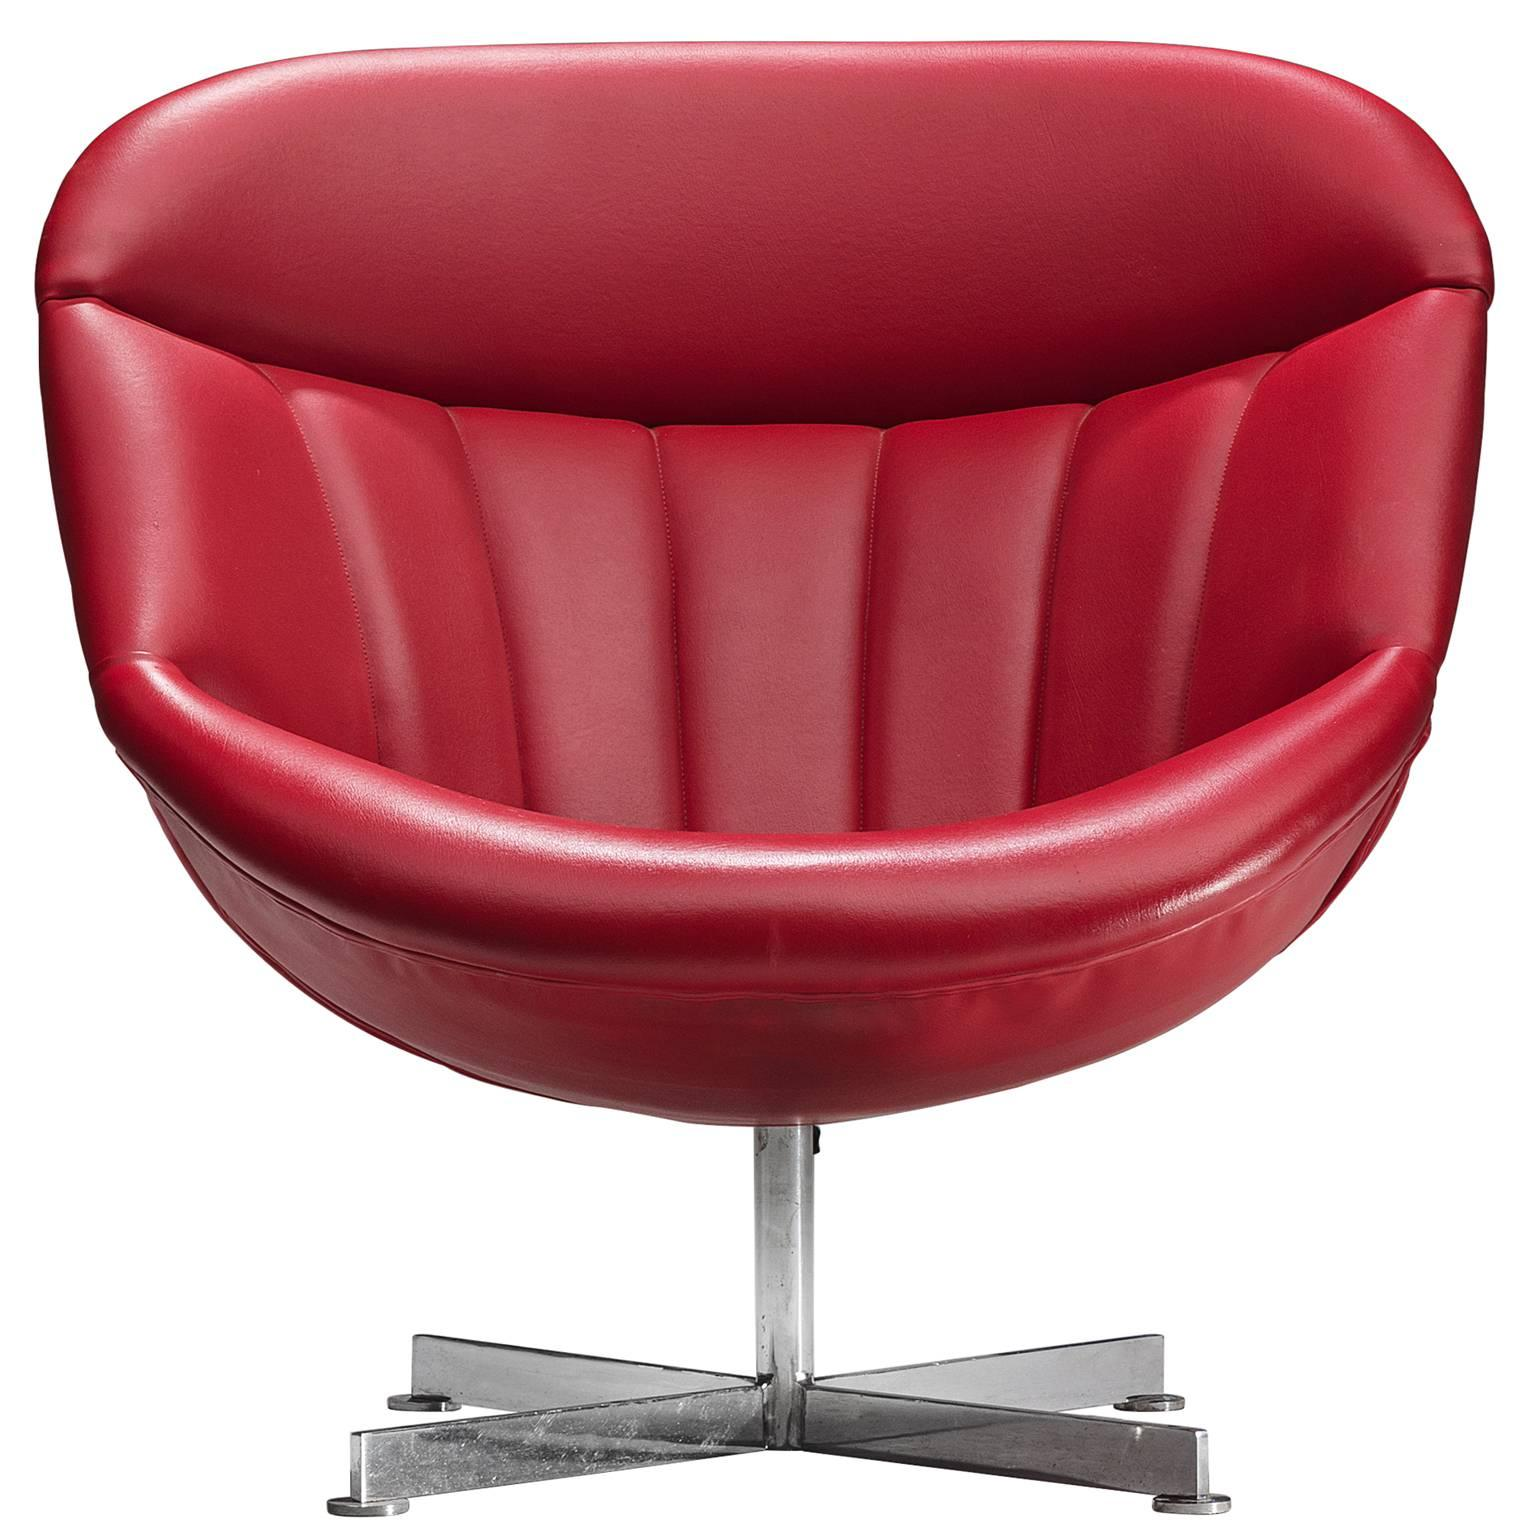 red lounge chair small arm chairs rudolf wolf for rohe sale at 1stdibs